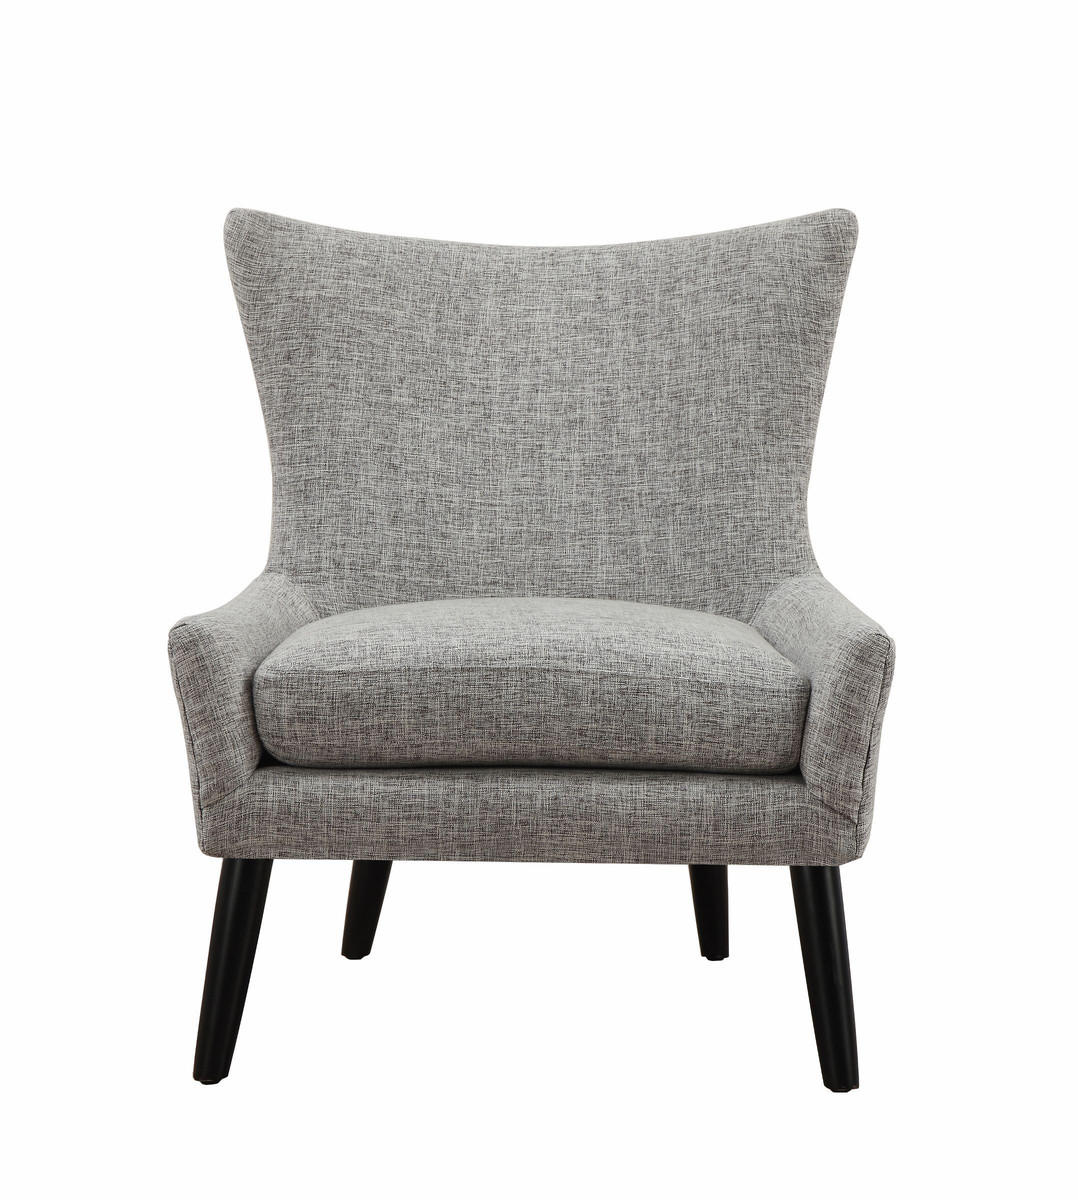 Mid Mod Accent Chair Gray Linen